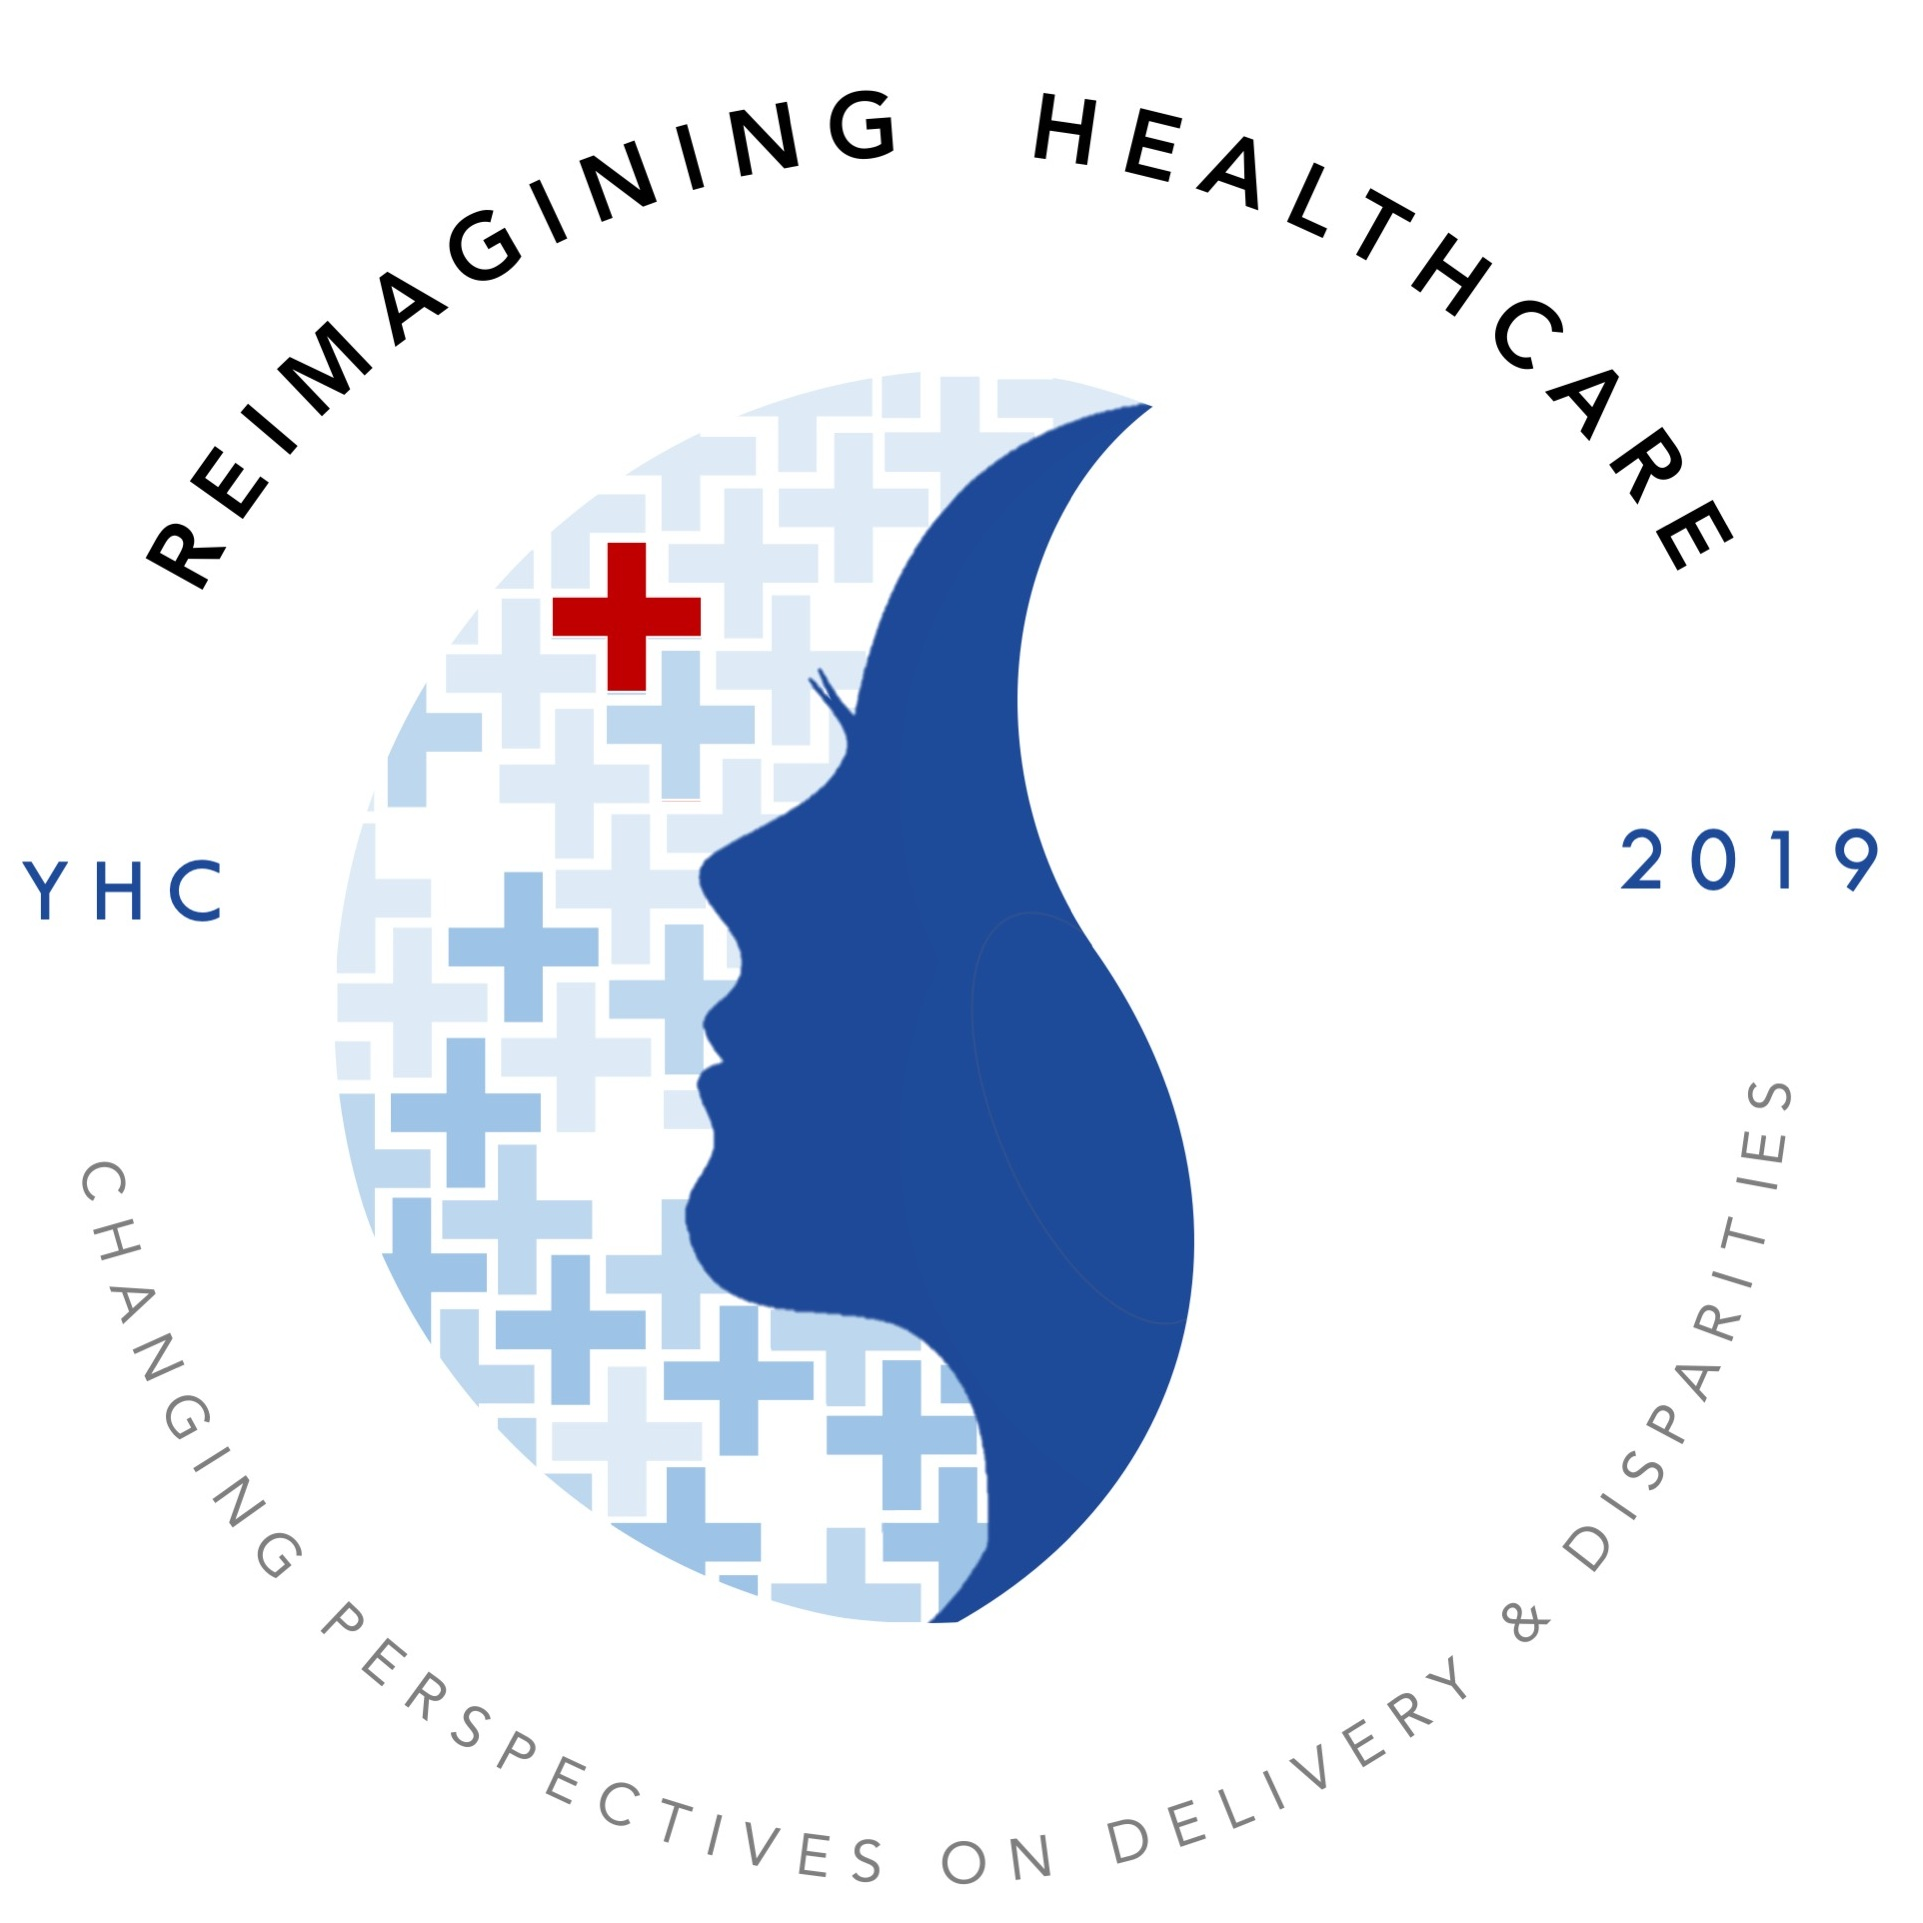 2019 YHC LOGO copy.jpeg